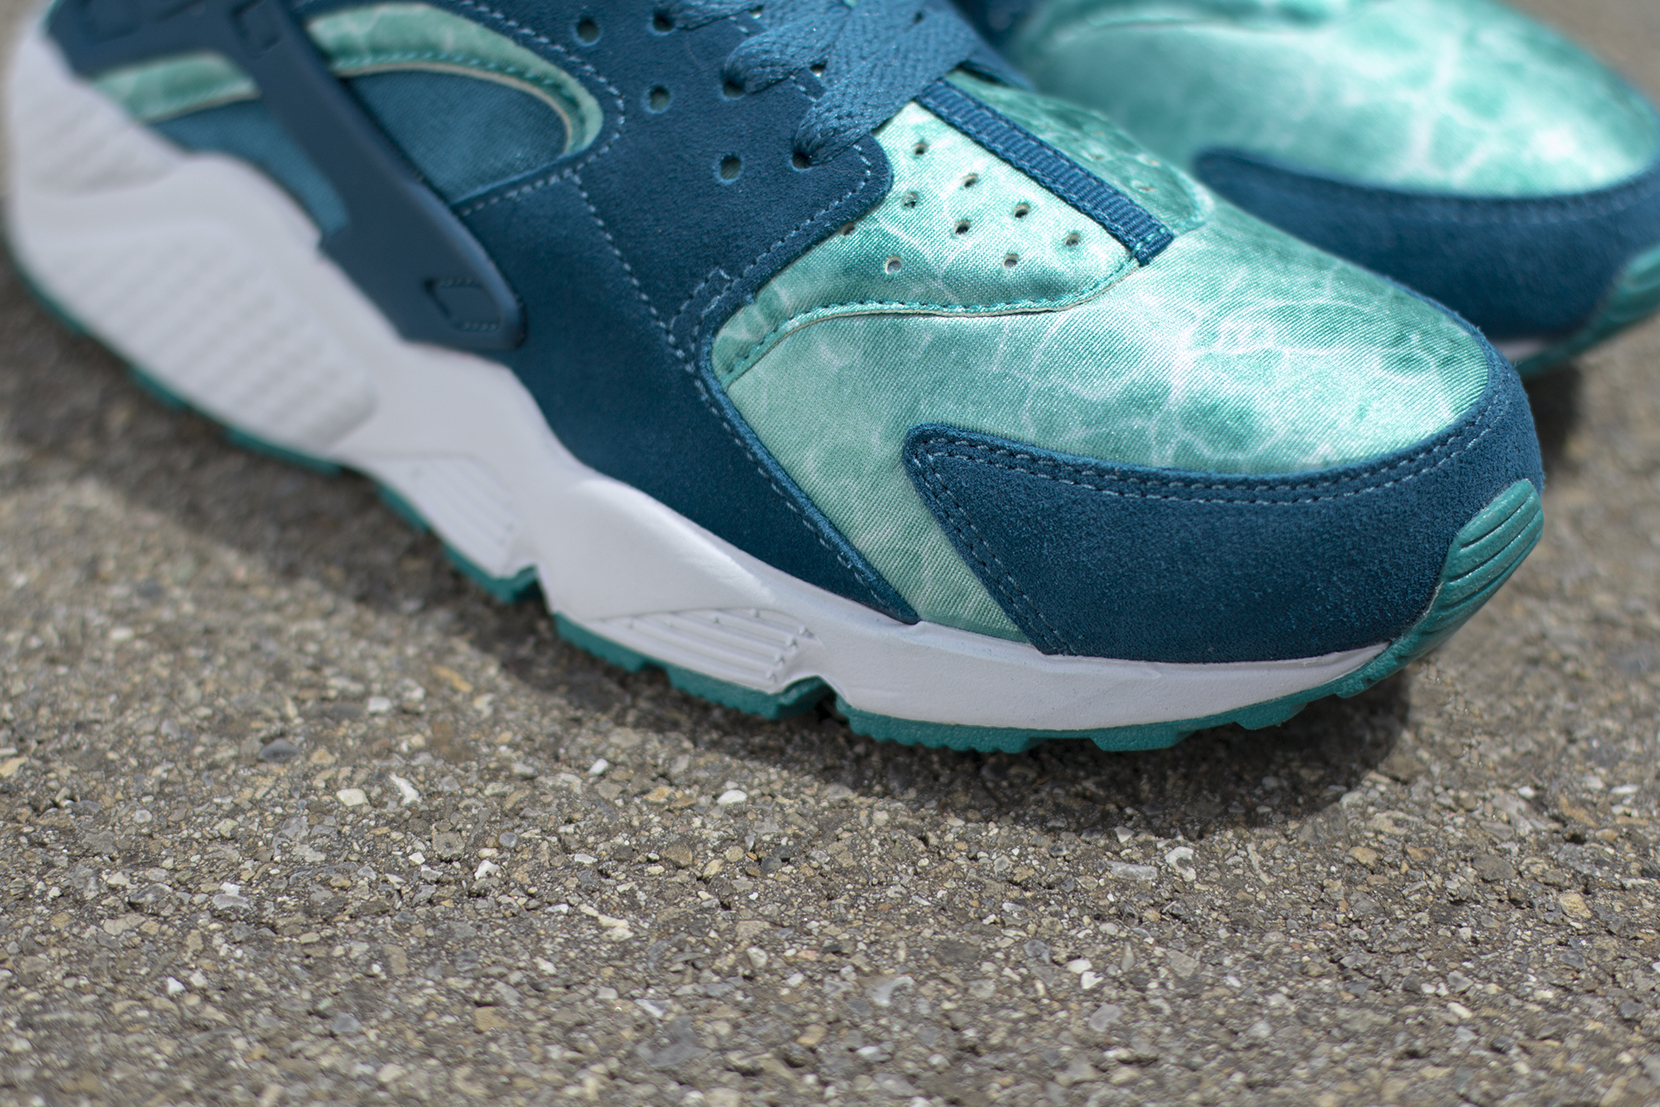 Nike Sportswear delivers a special colorway of the Nike Air Huarache  inspired by the Santa Monica waters. Offered at Titolo, the brand new Nike  Air Huarache ...